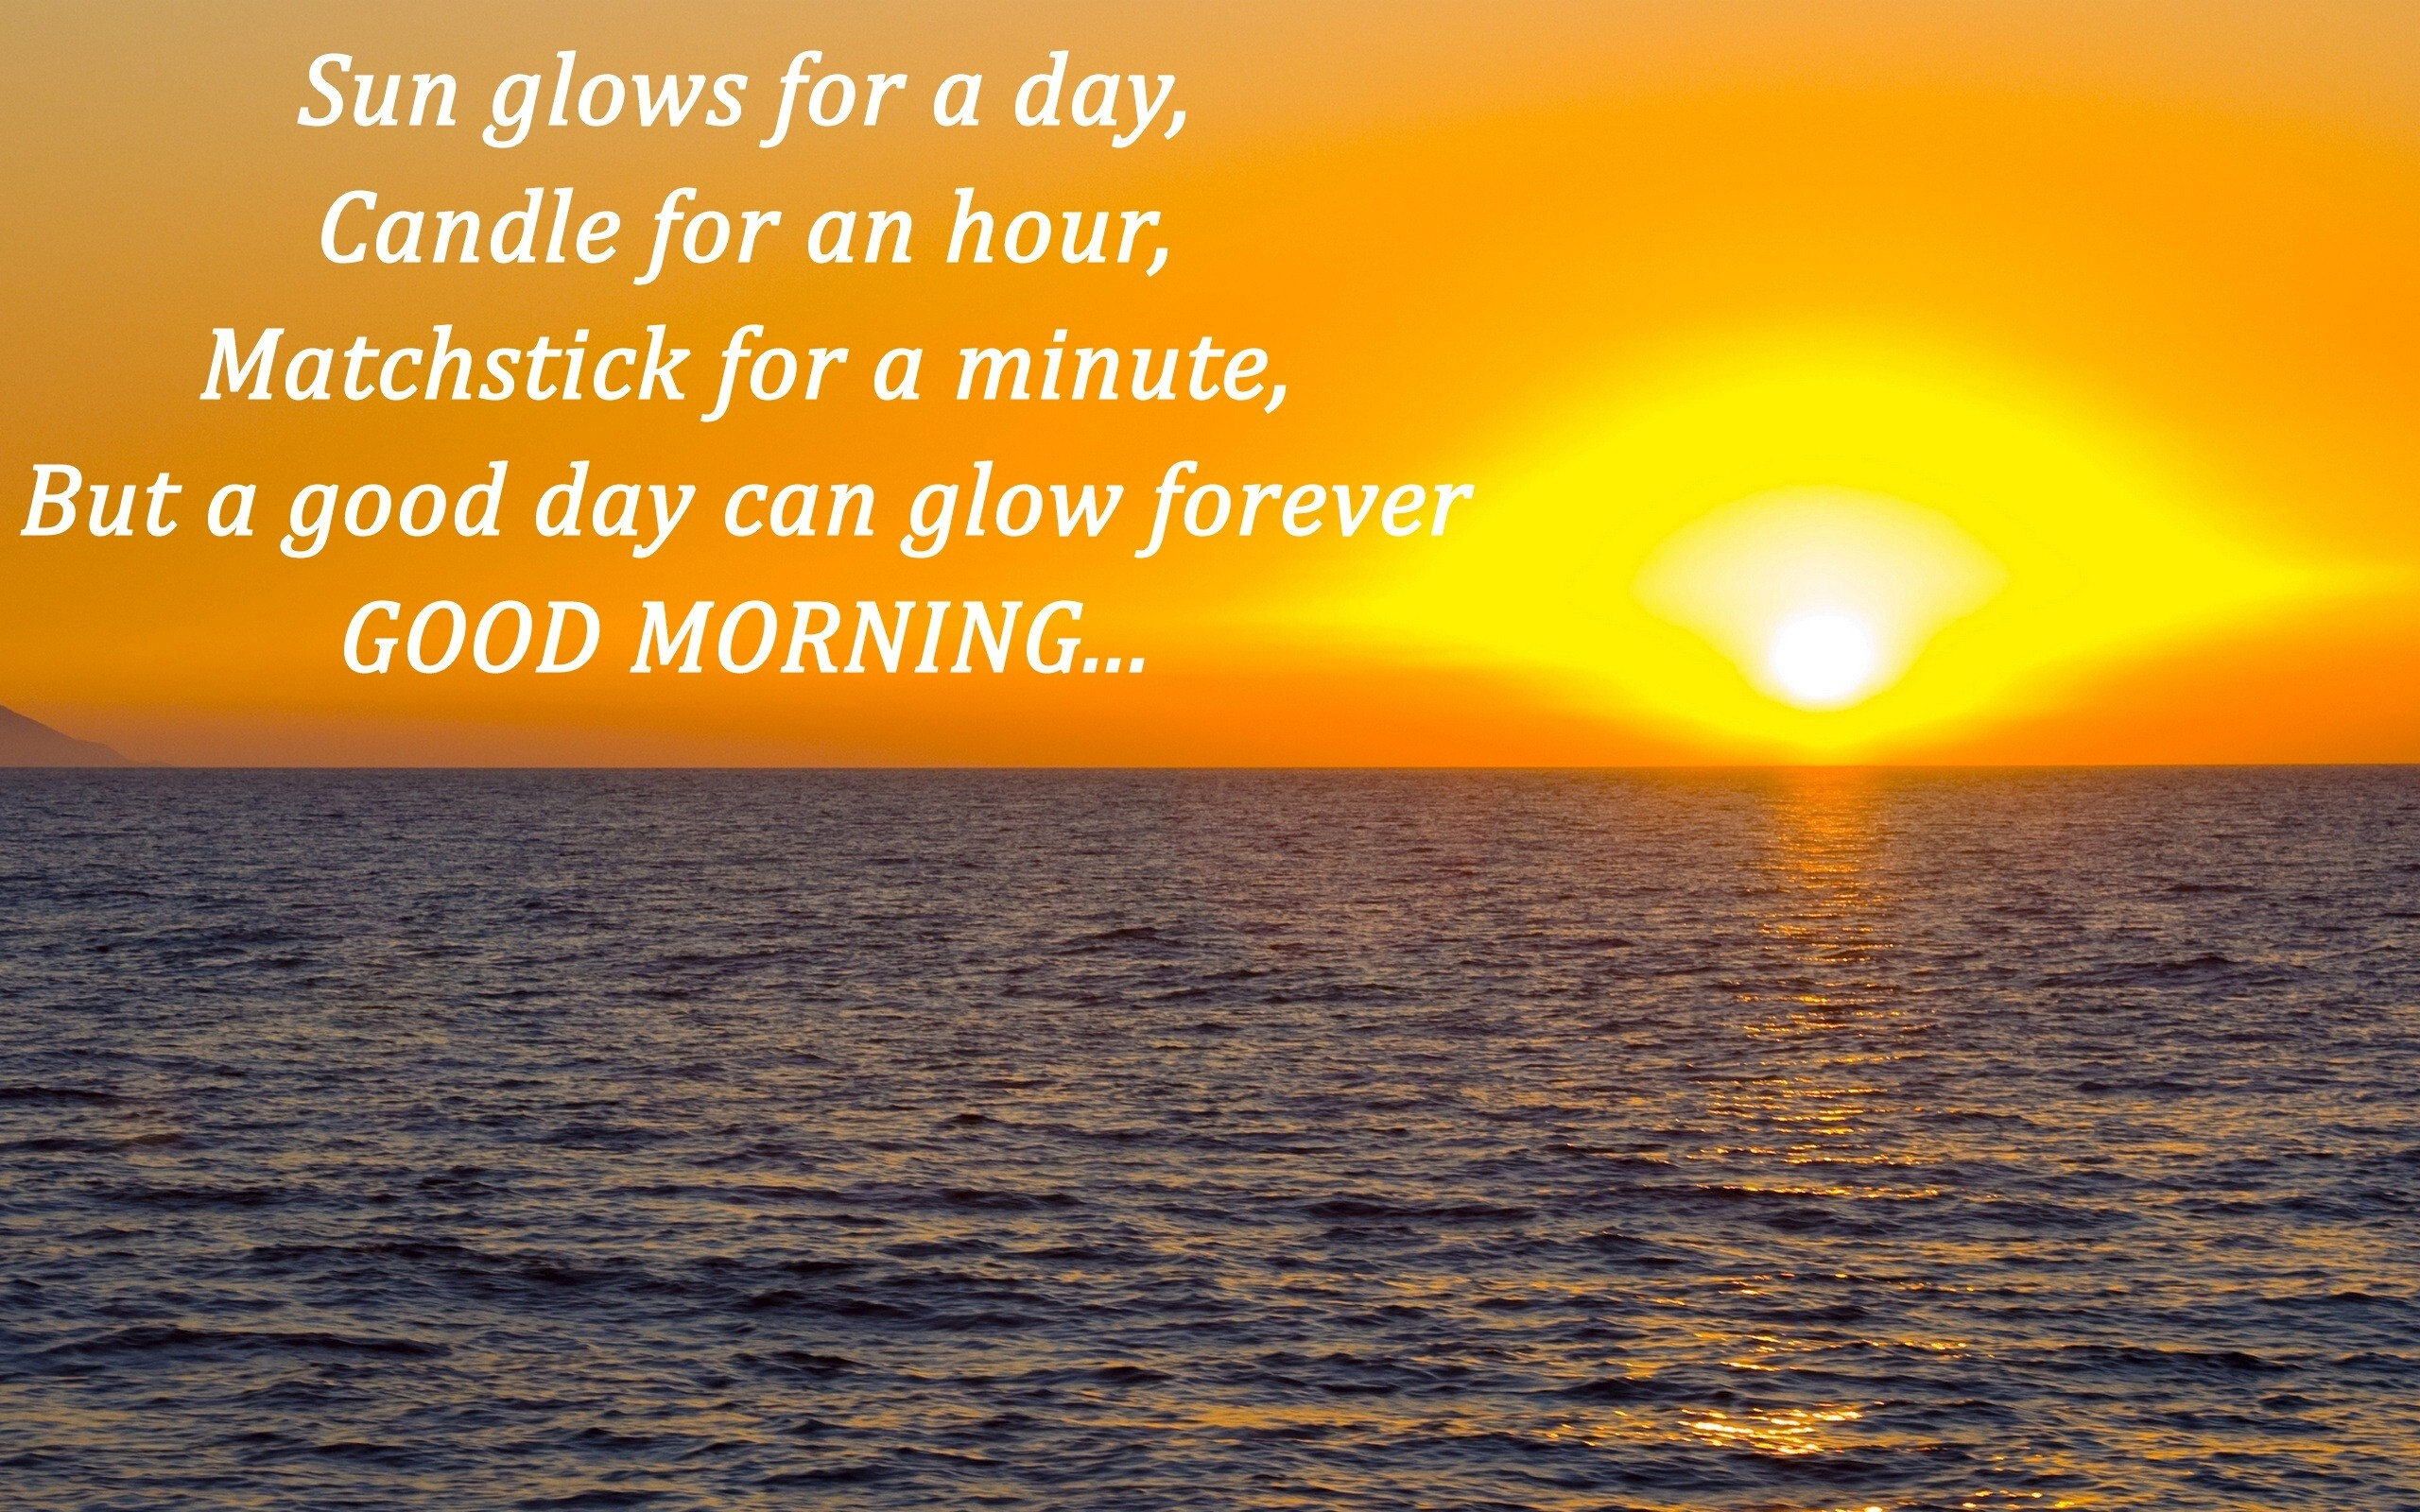 Good Morning Love Thought Wallpaper : Beautiful Sun Quotes. QuotesGram